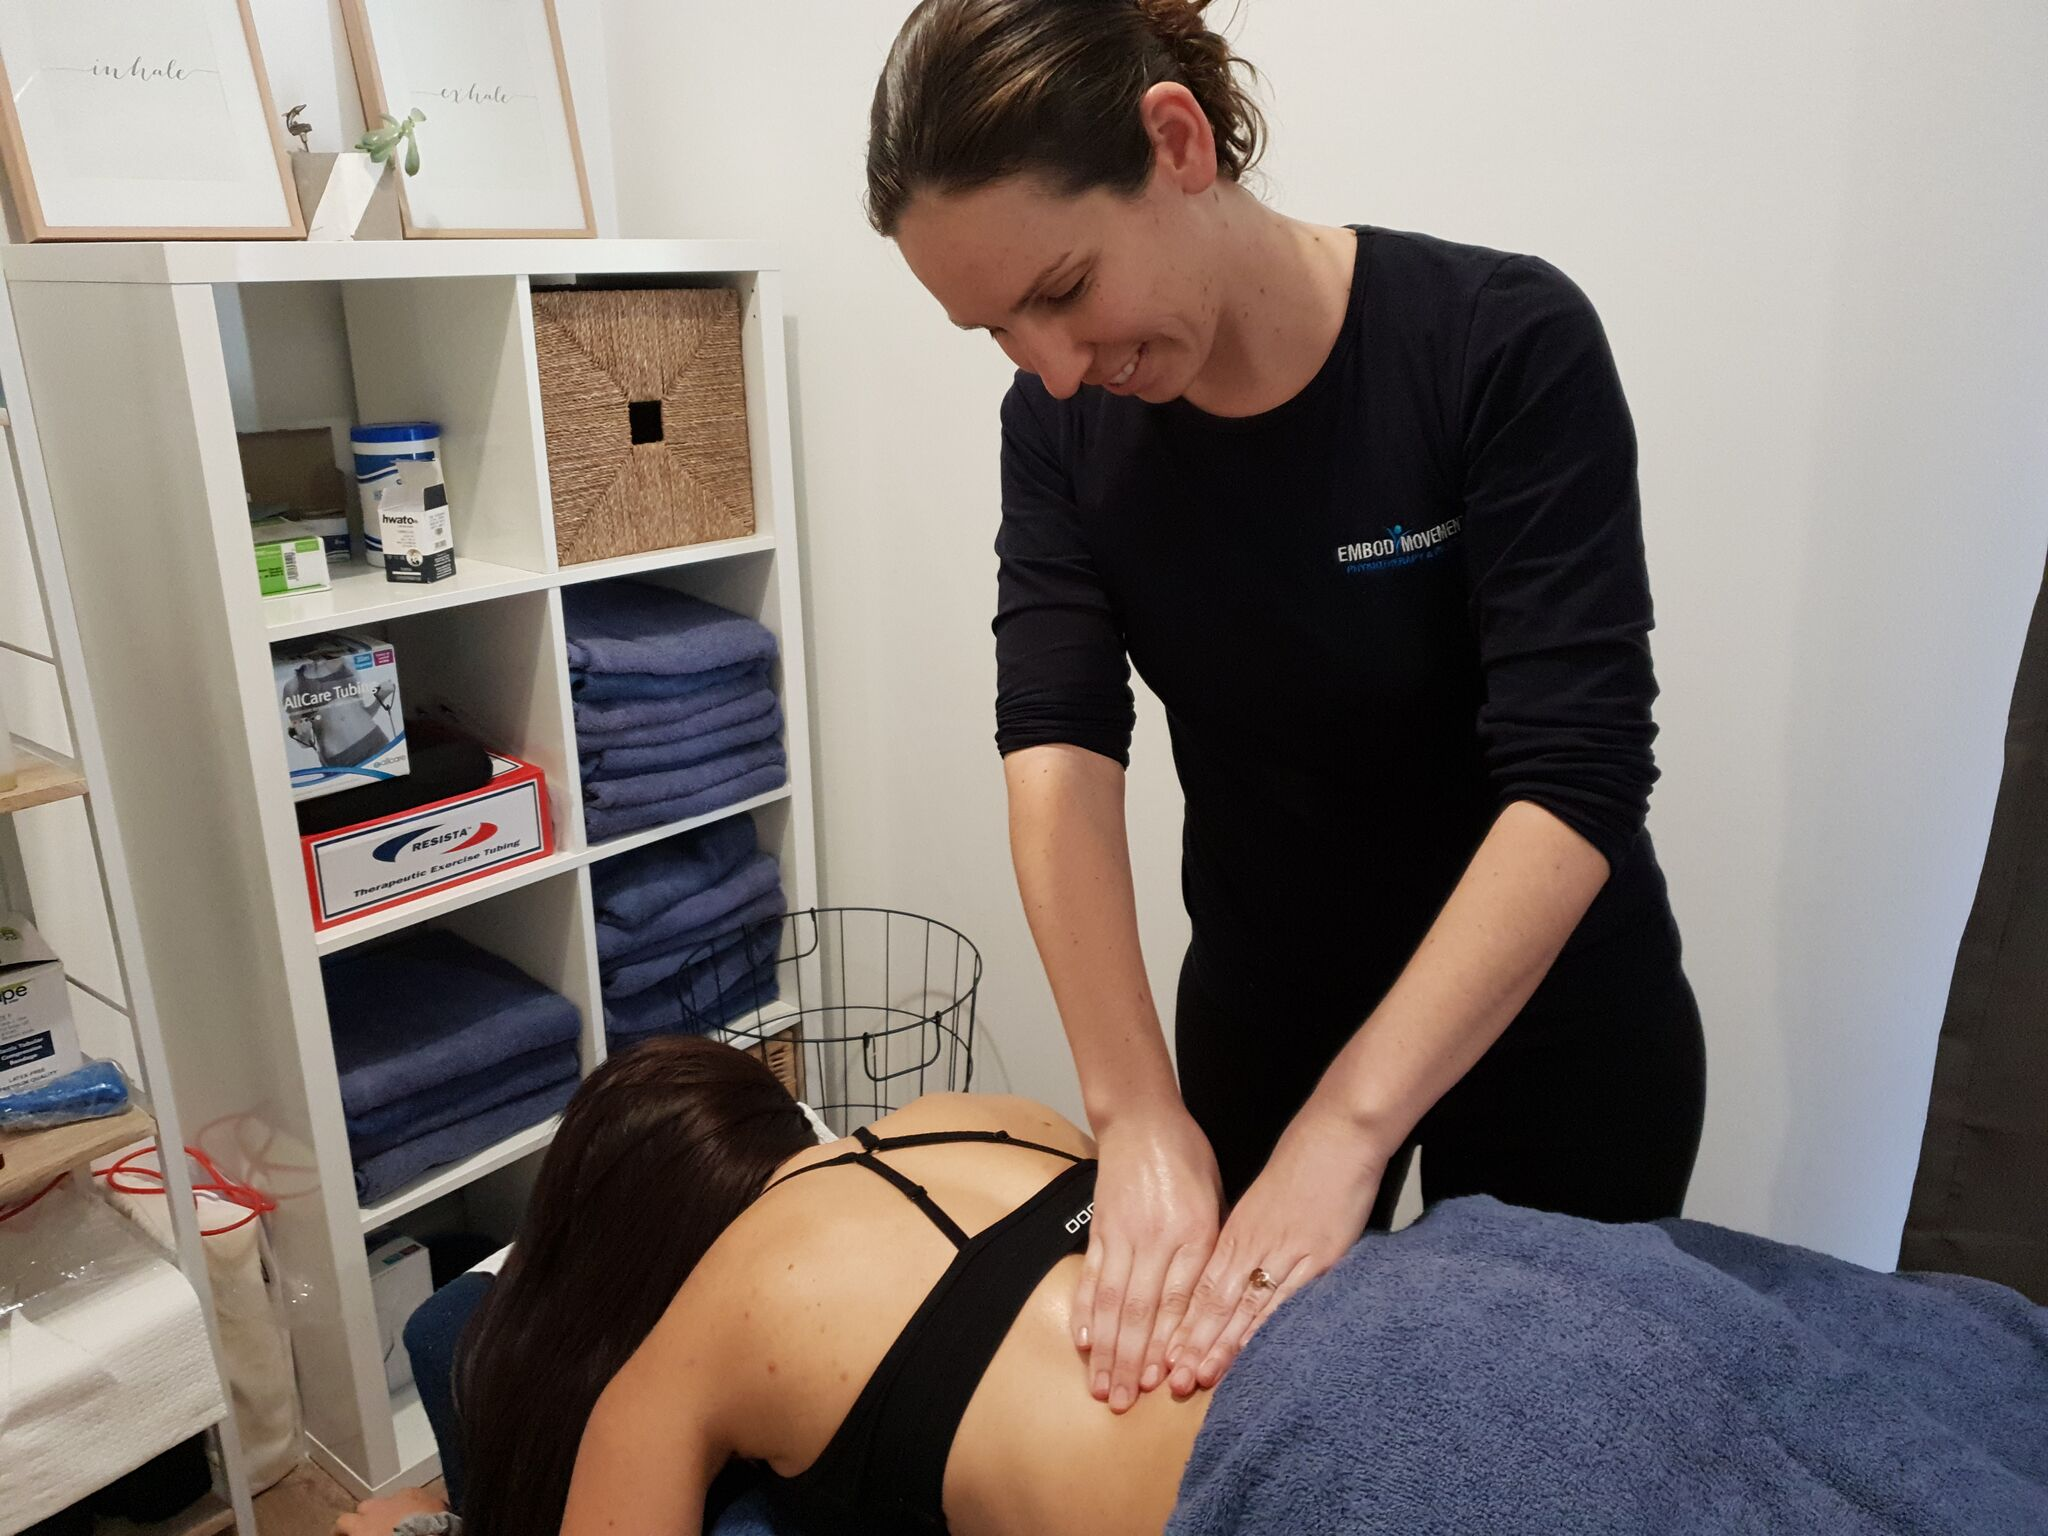 Embody Physiotherapy treatment for back pain